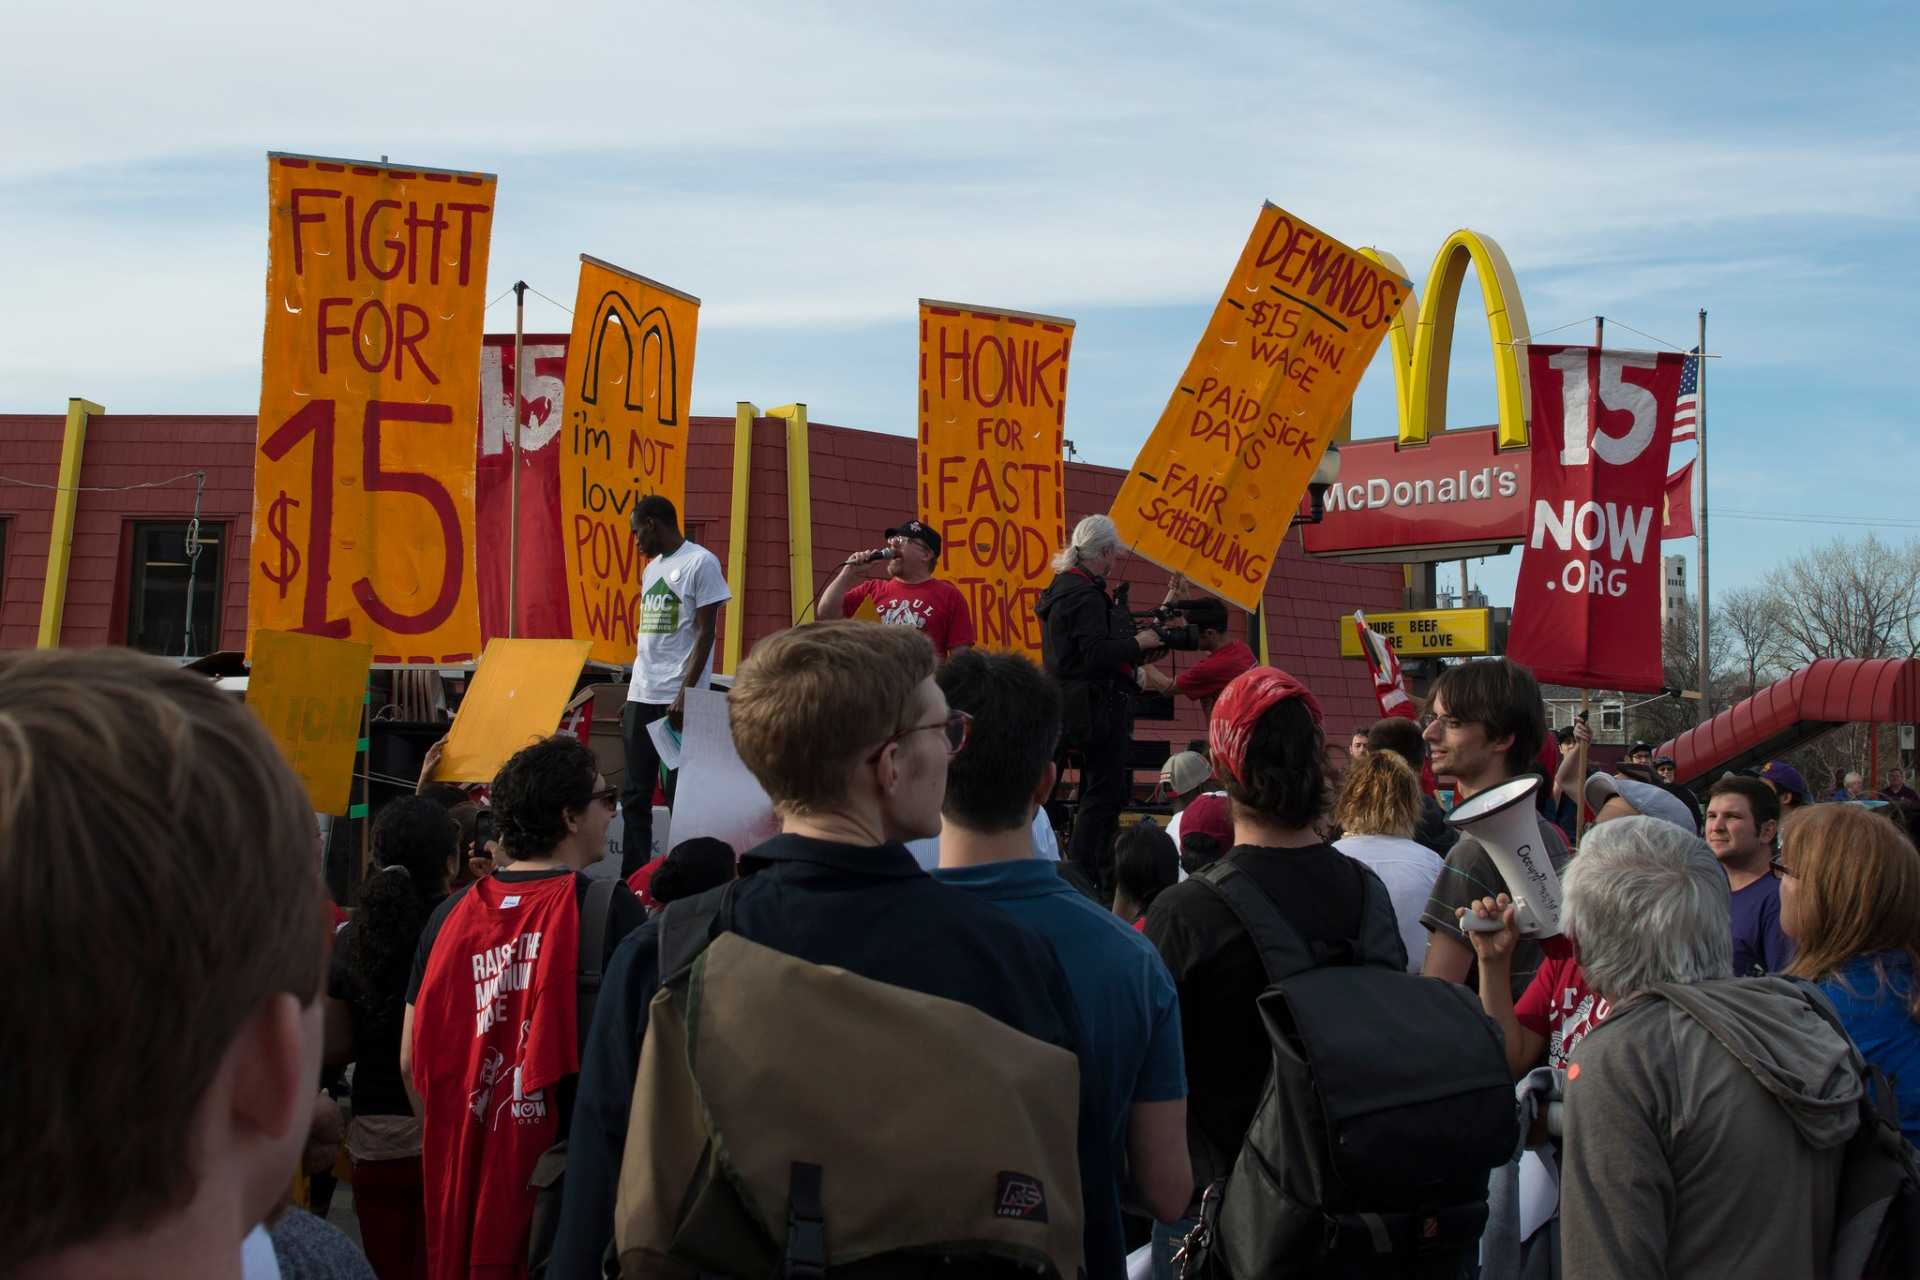 Strike and protest for a $15/hour minimum wage at a McDonald's restaurant. Fibonacci Blue/Flickr